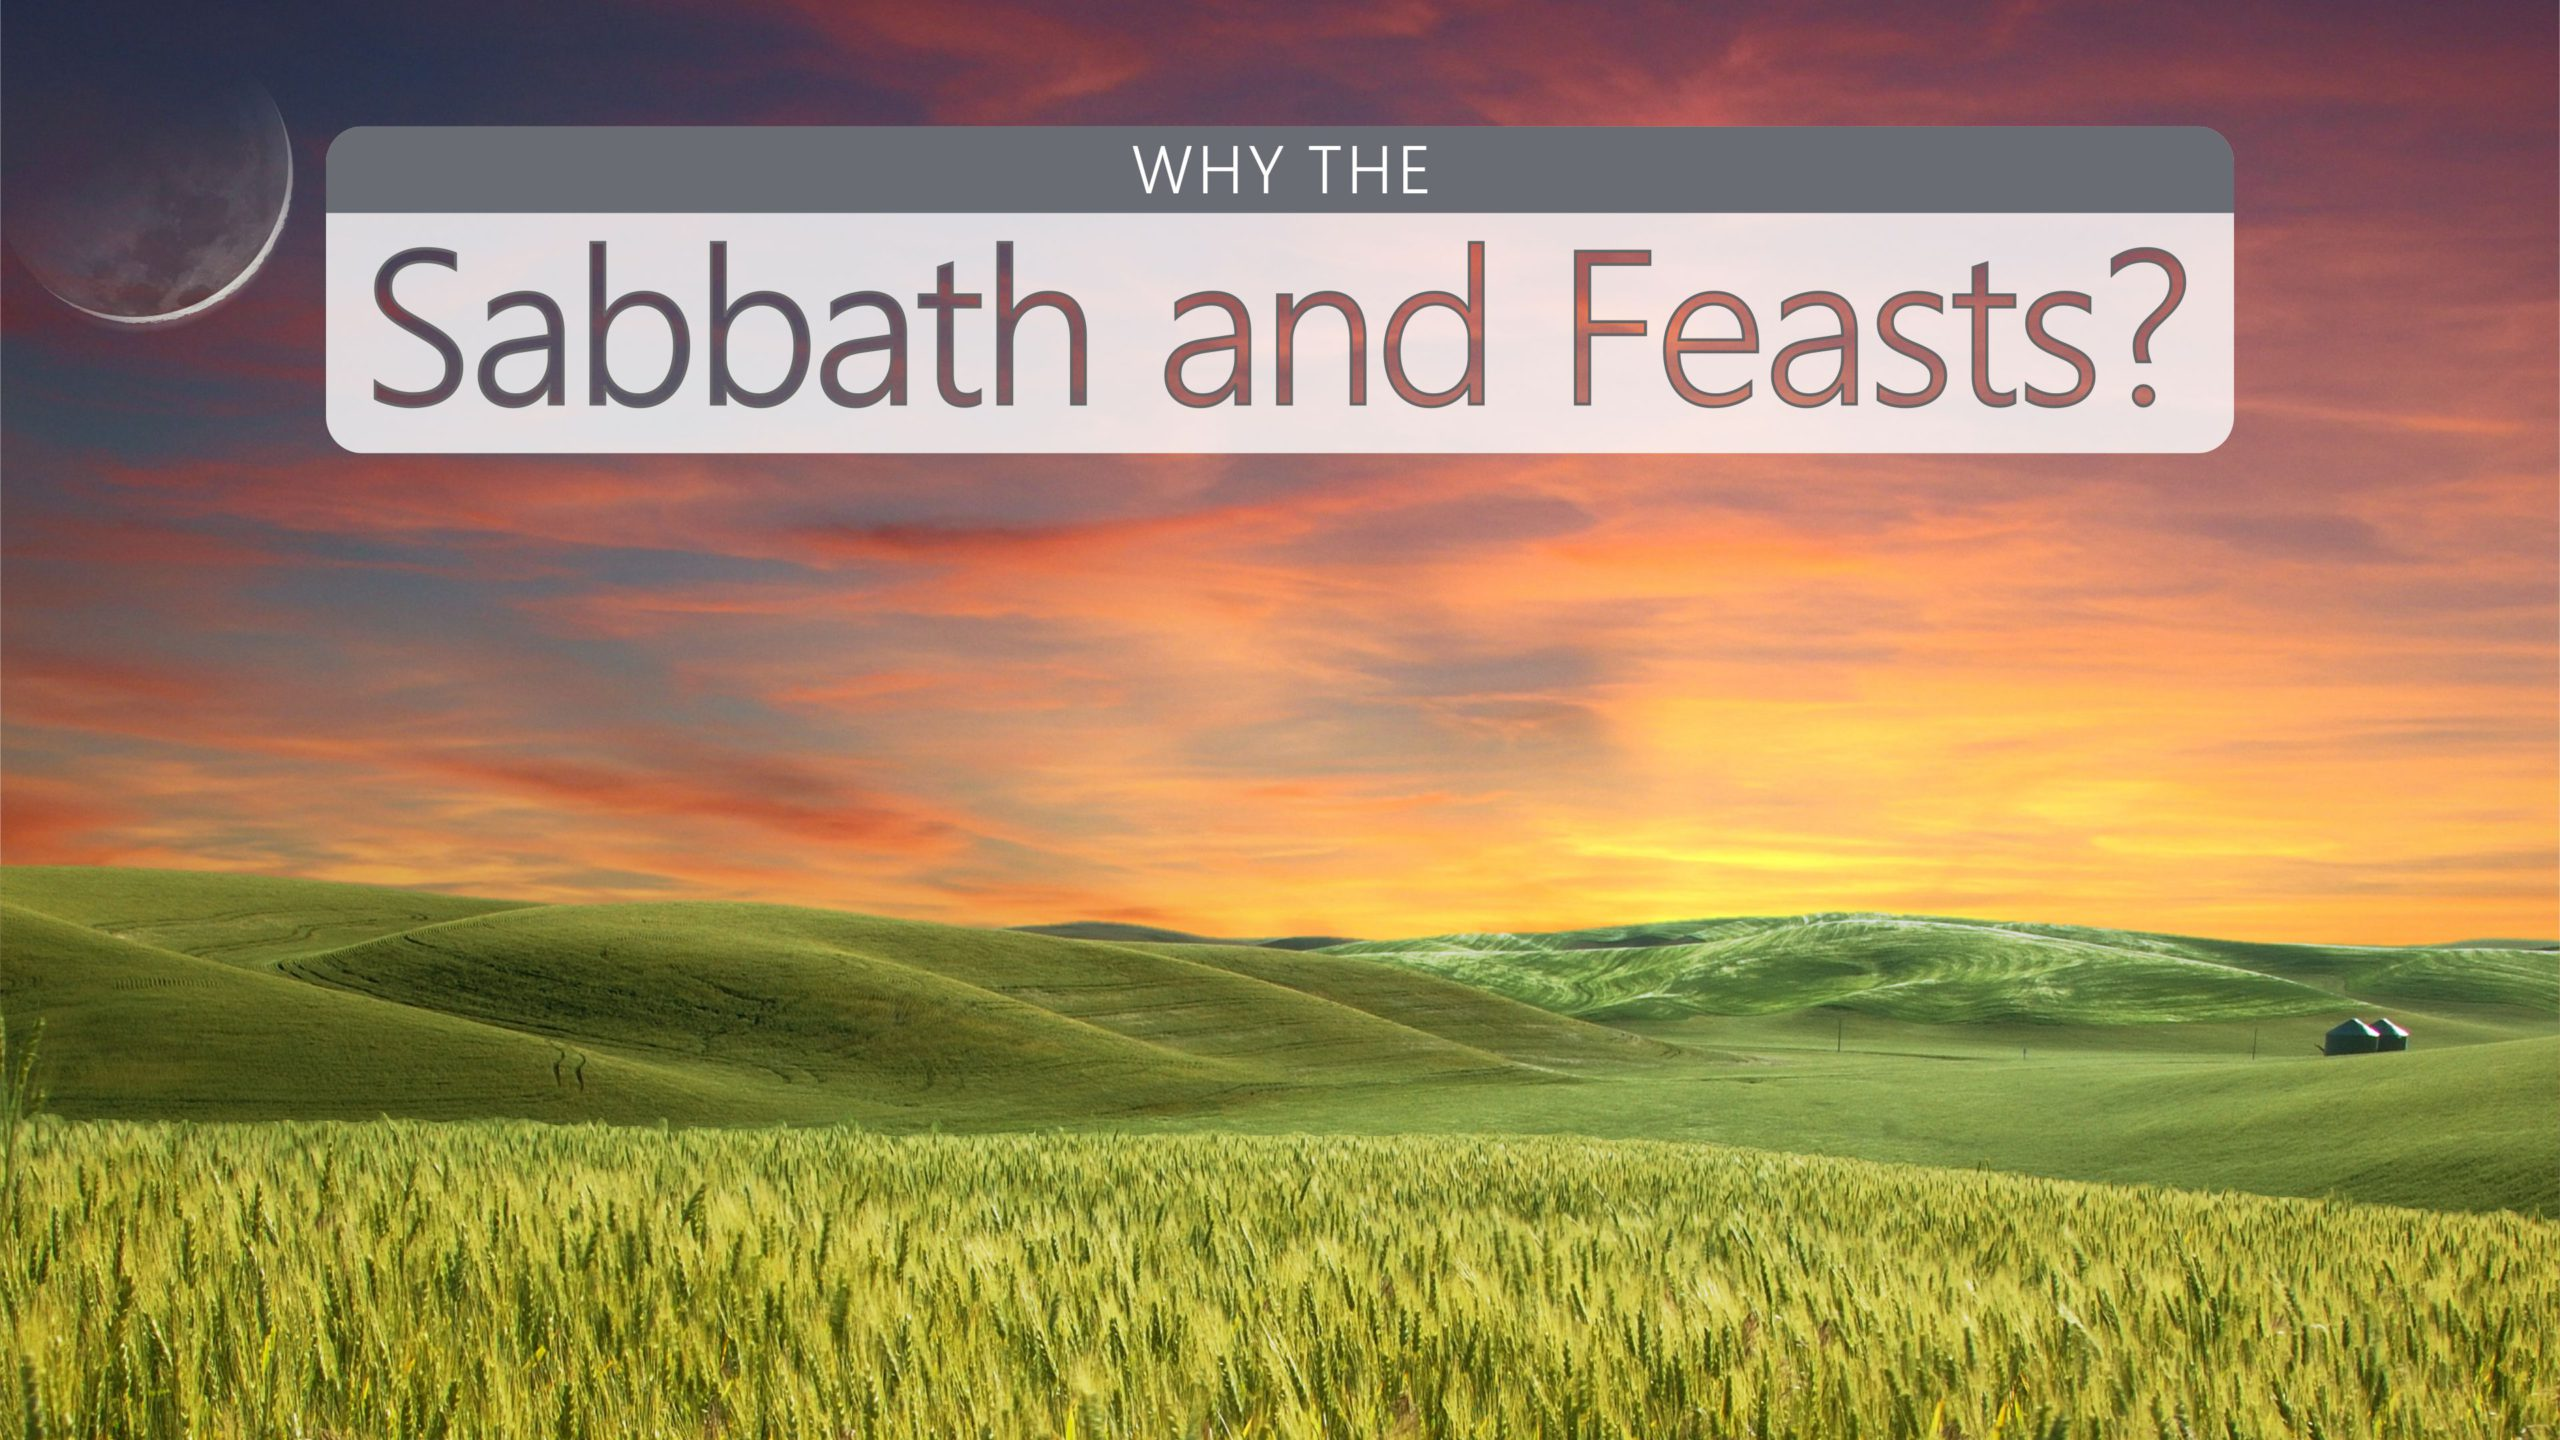 Why the Sabbath and Feasts?